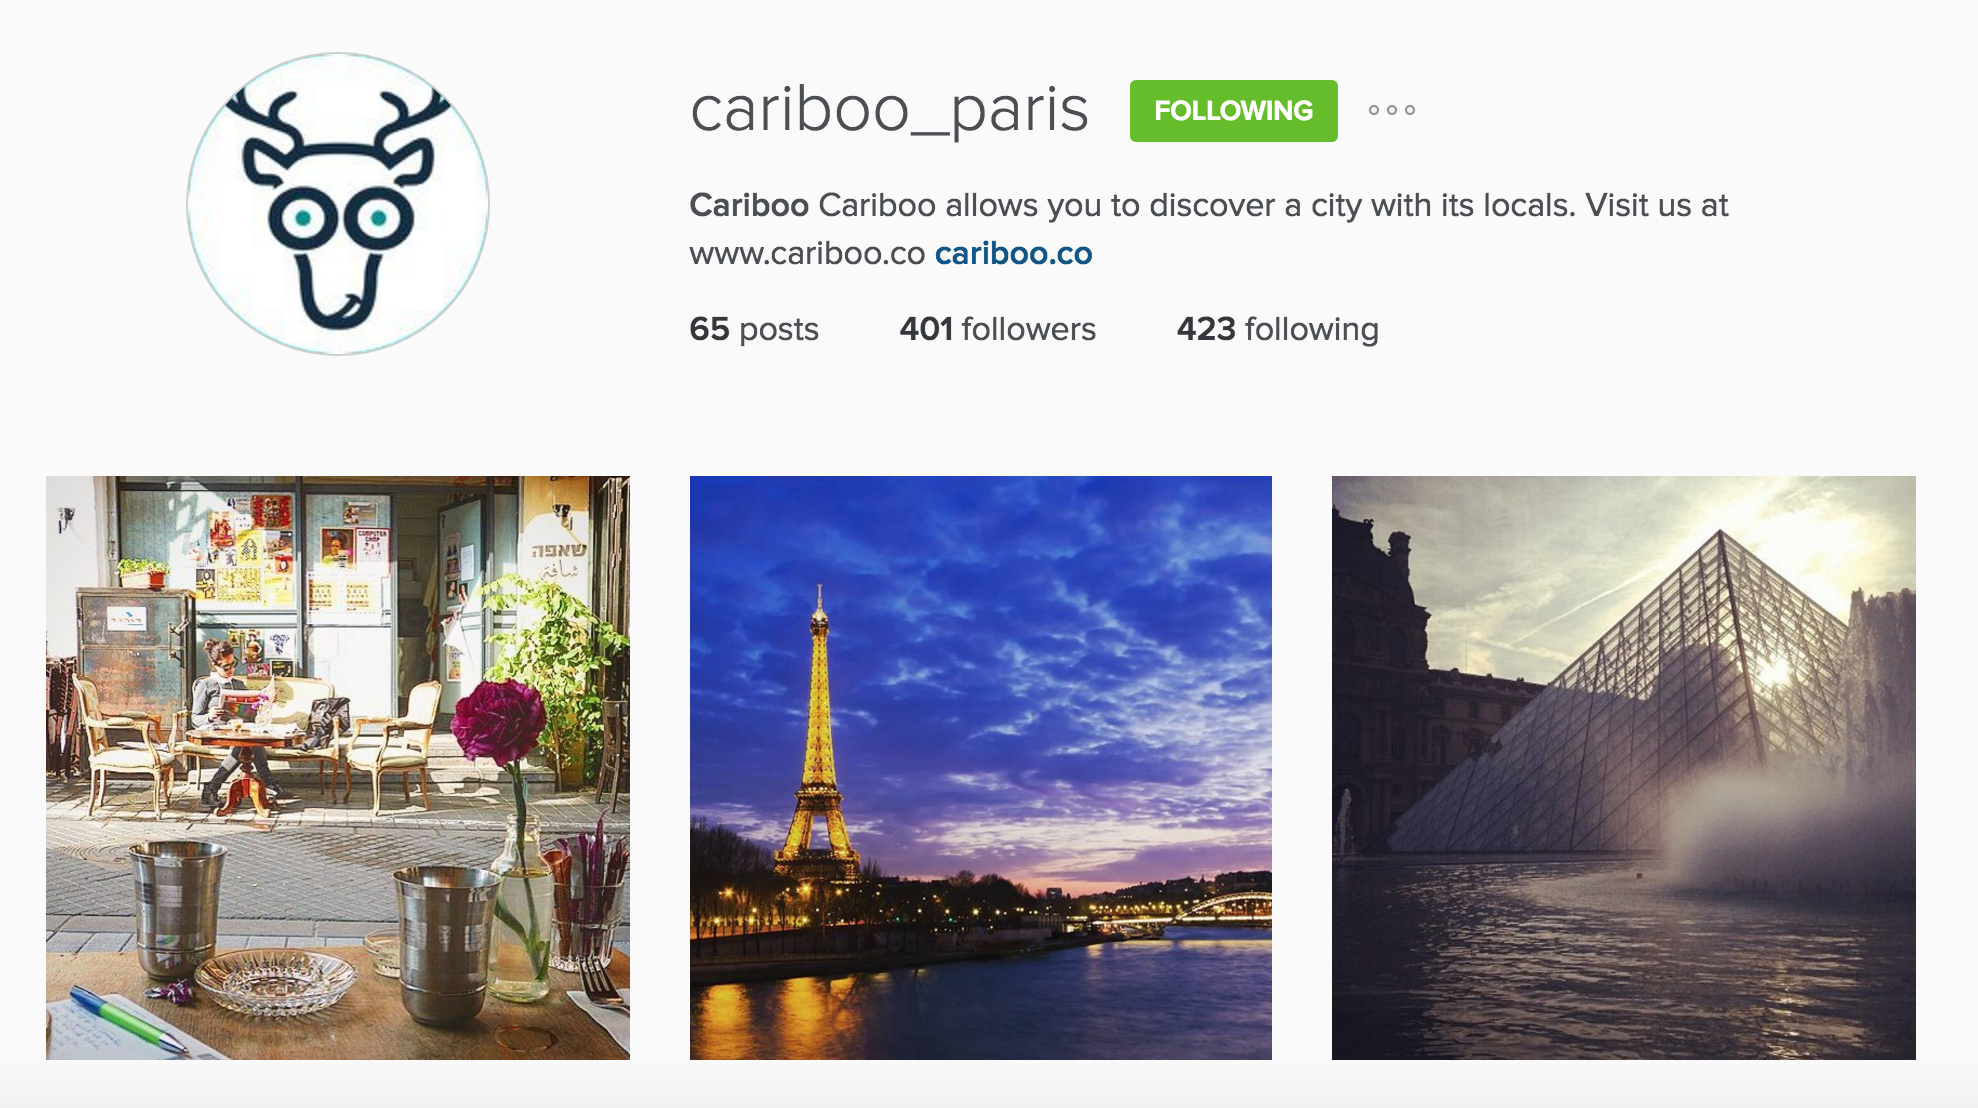 instagram cariboo paris account